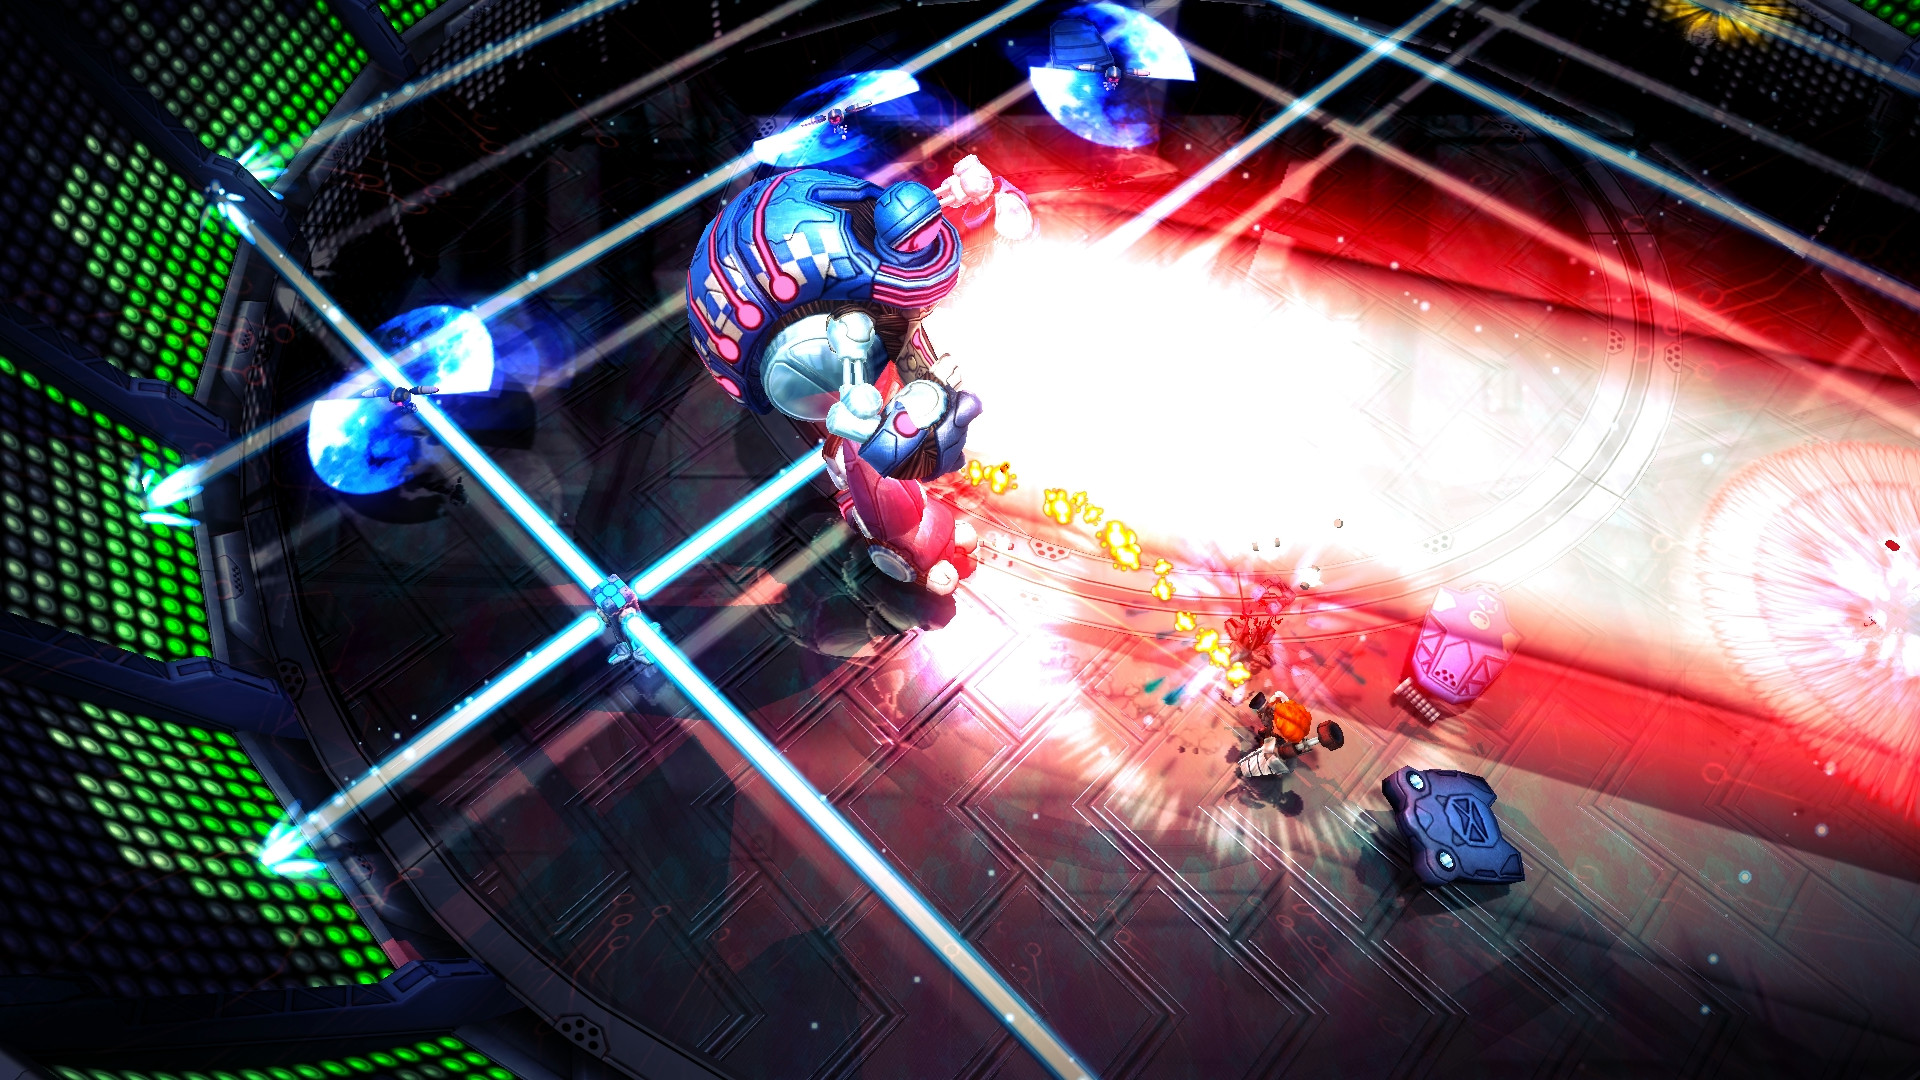 A screenshot from Assault Android Cactus. A robot viewed vaguely from above unleashes a frankly ridiculously large laser beam towards the player. It really is a big laser.